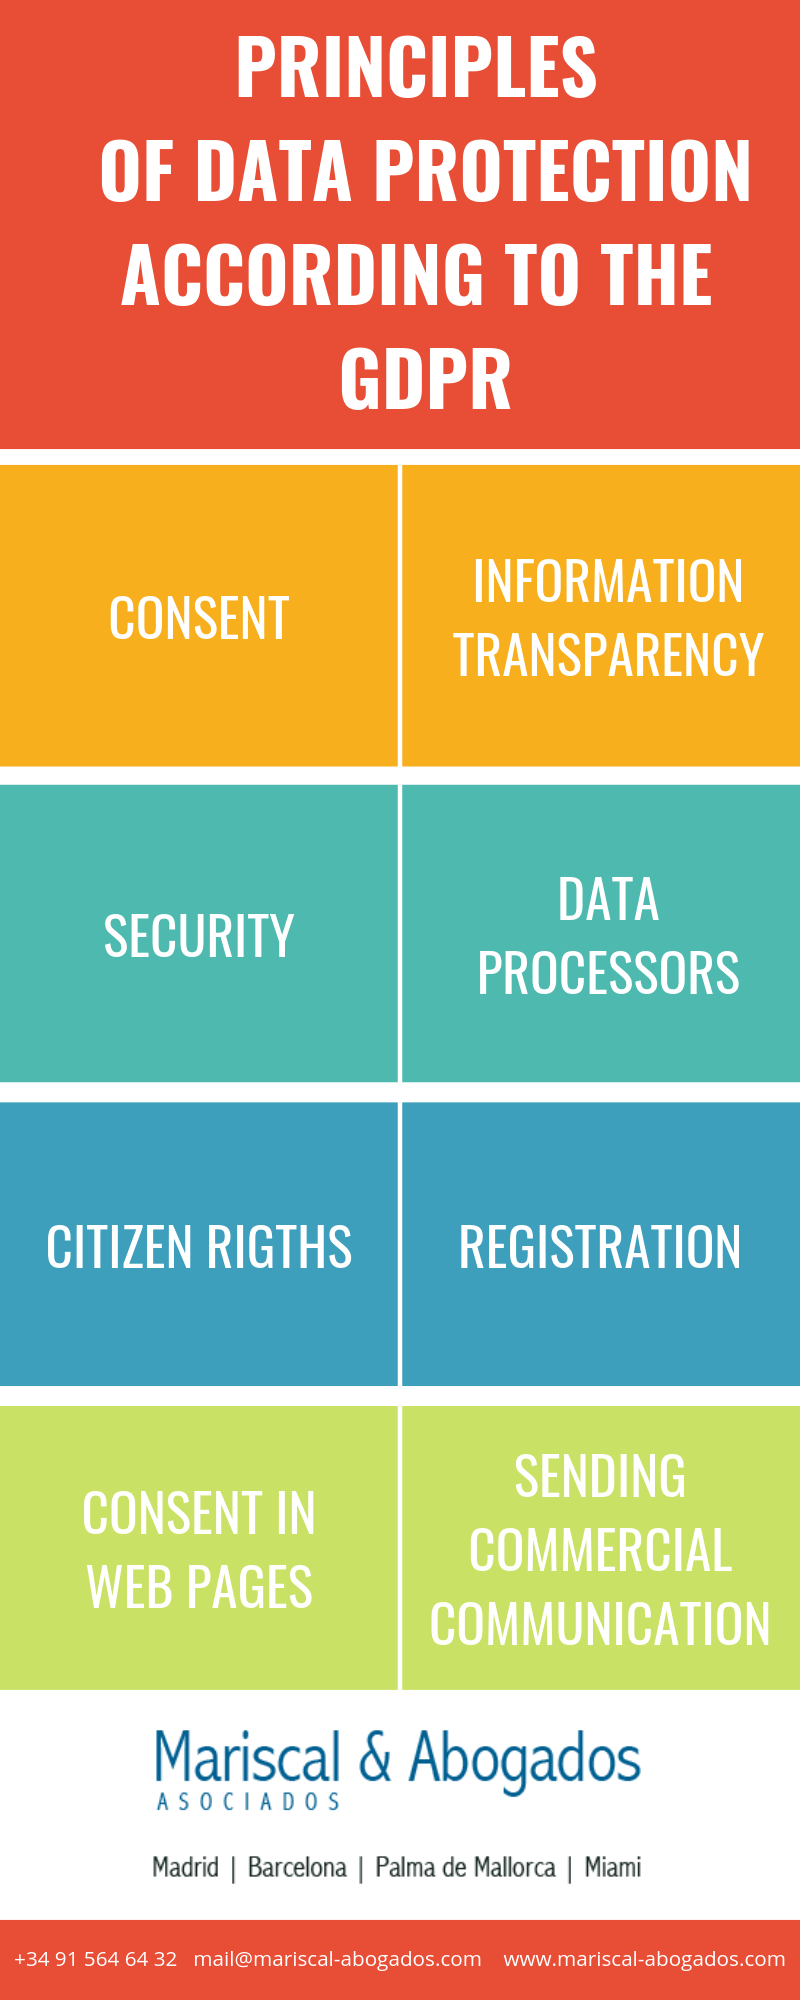 28 2018 Principles of data protection according to the GDPR